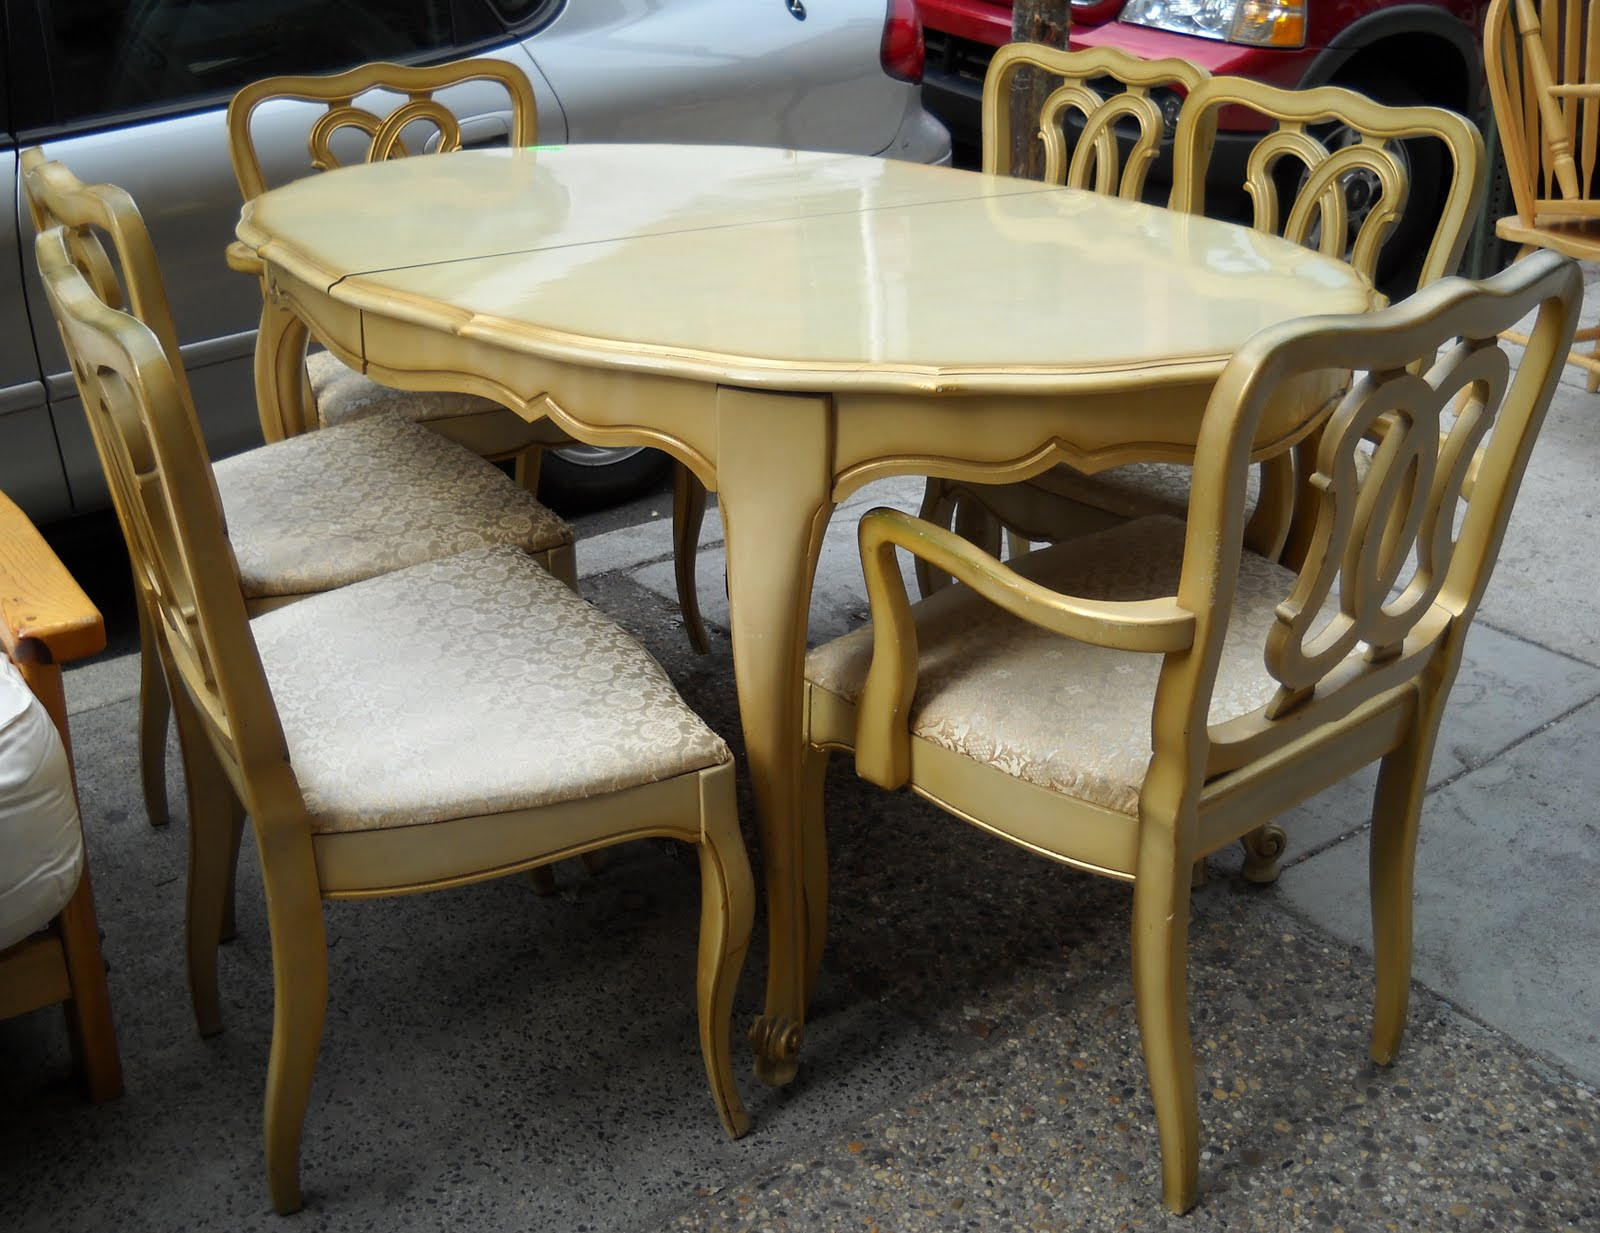 Beautiful French Provincial Dining Set Includes A Buffet And Table 6 Chairs Sold Separately 150 For The 165 Six